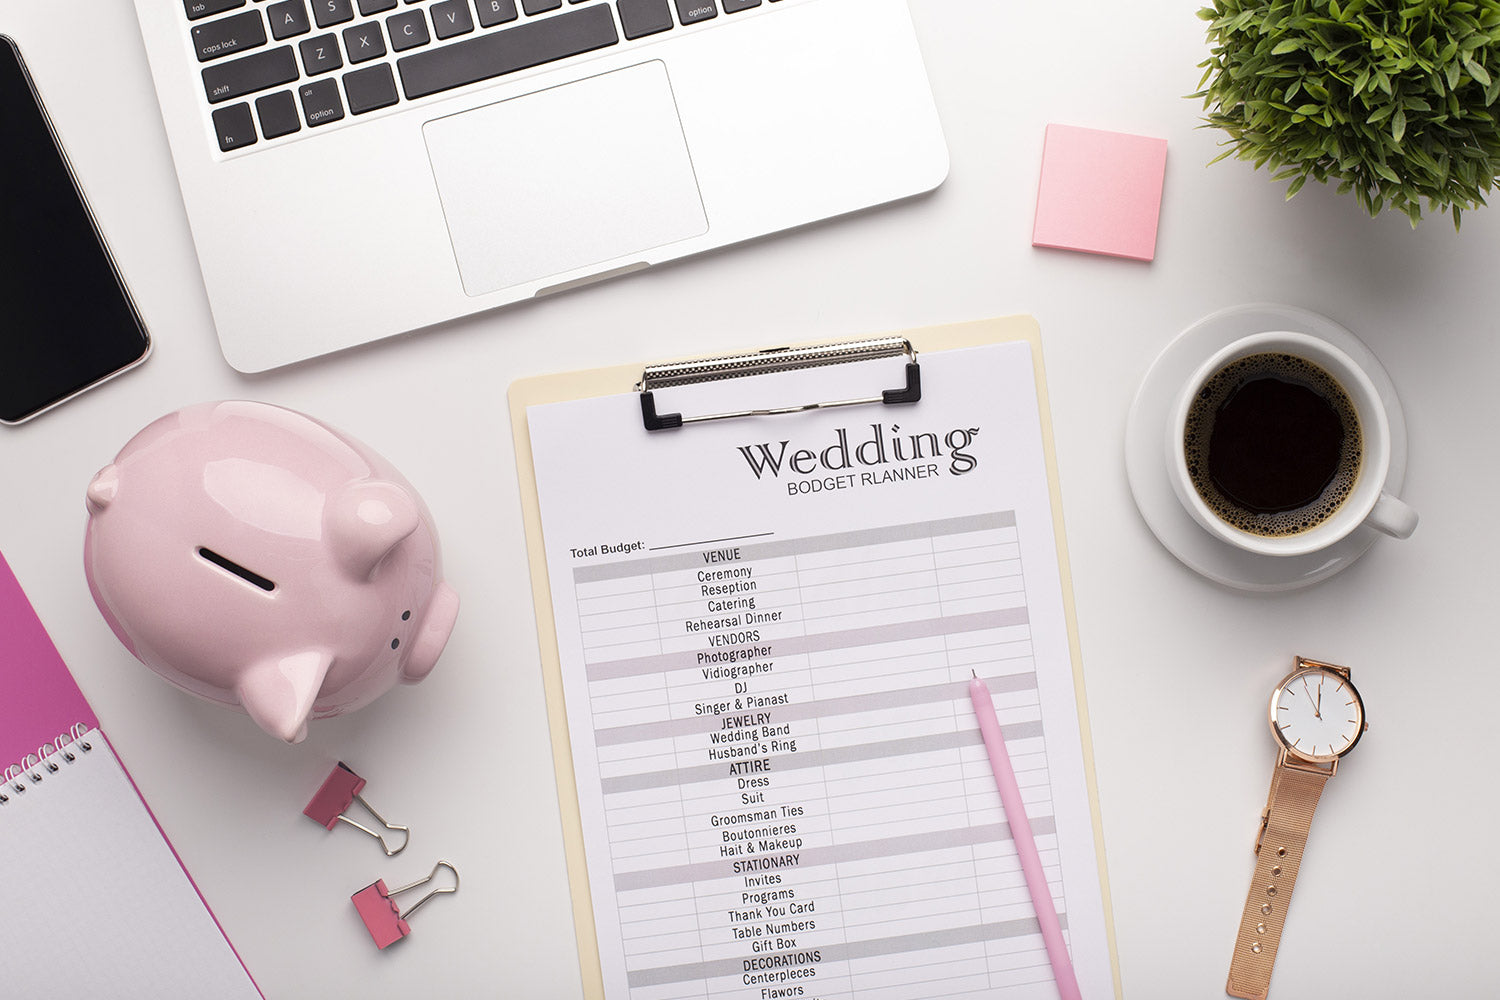 Get the right 'Wedding Guest List'